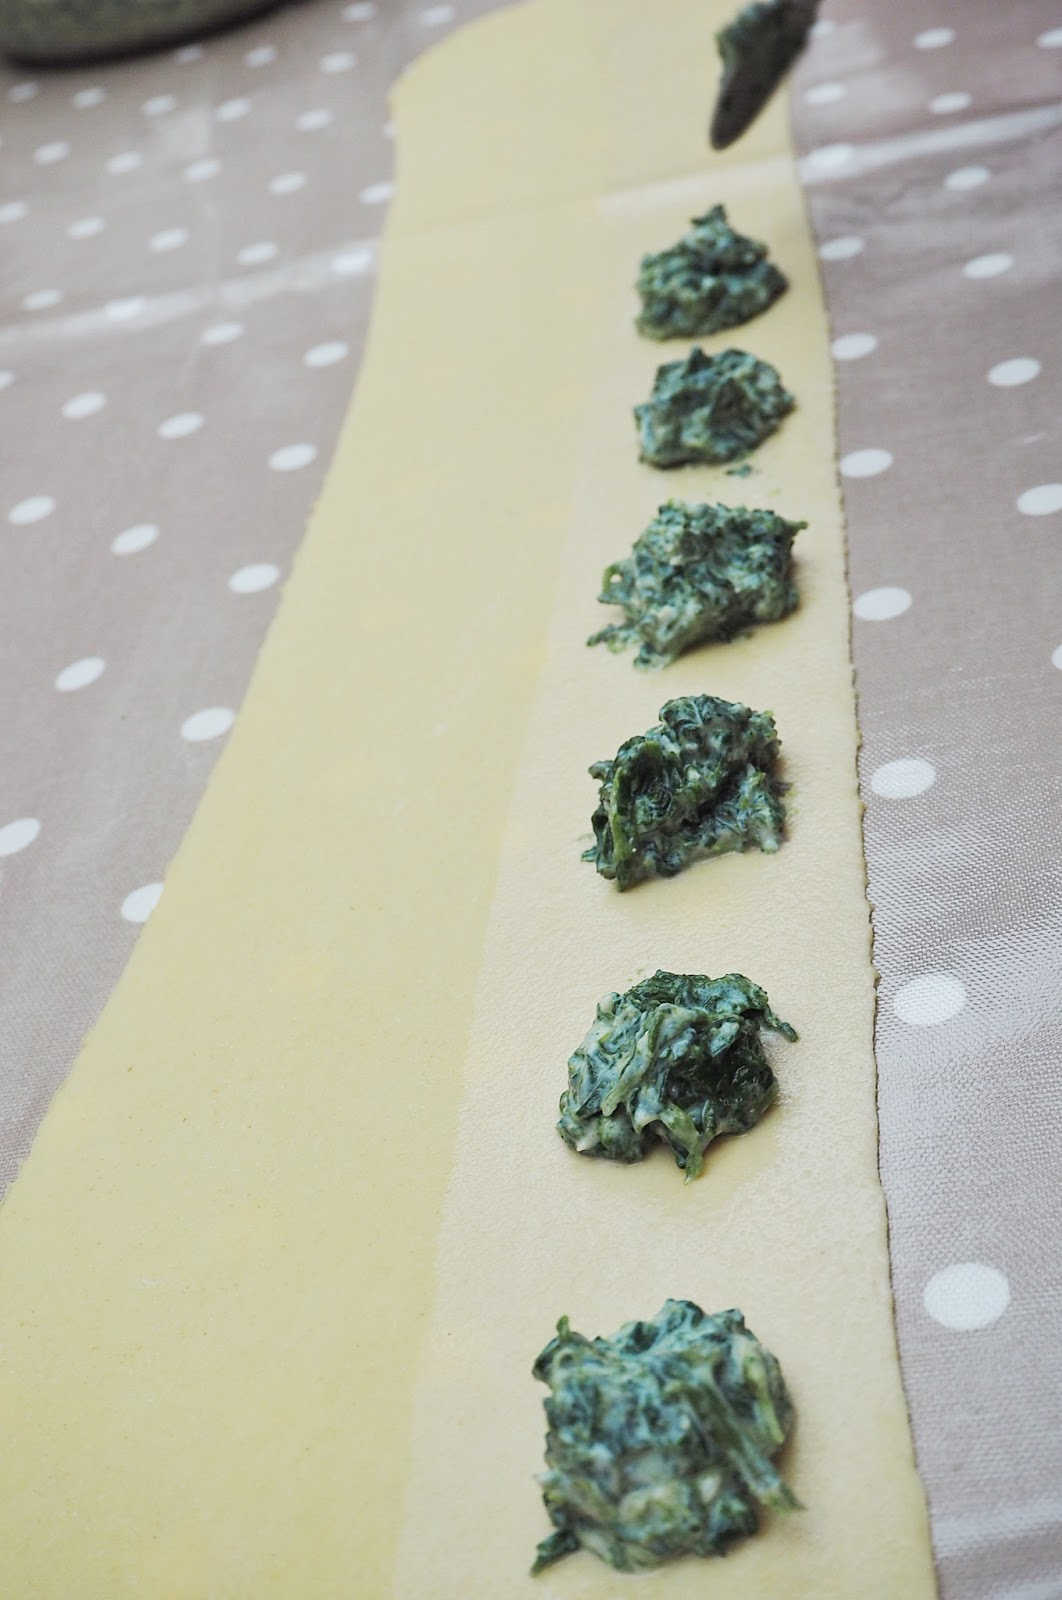 Italian homemade pesto ravioli filling